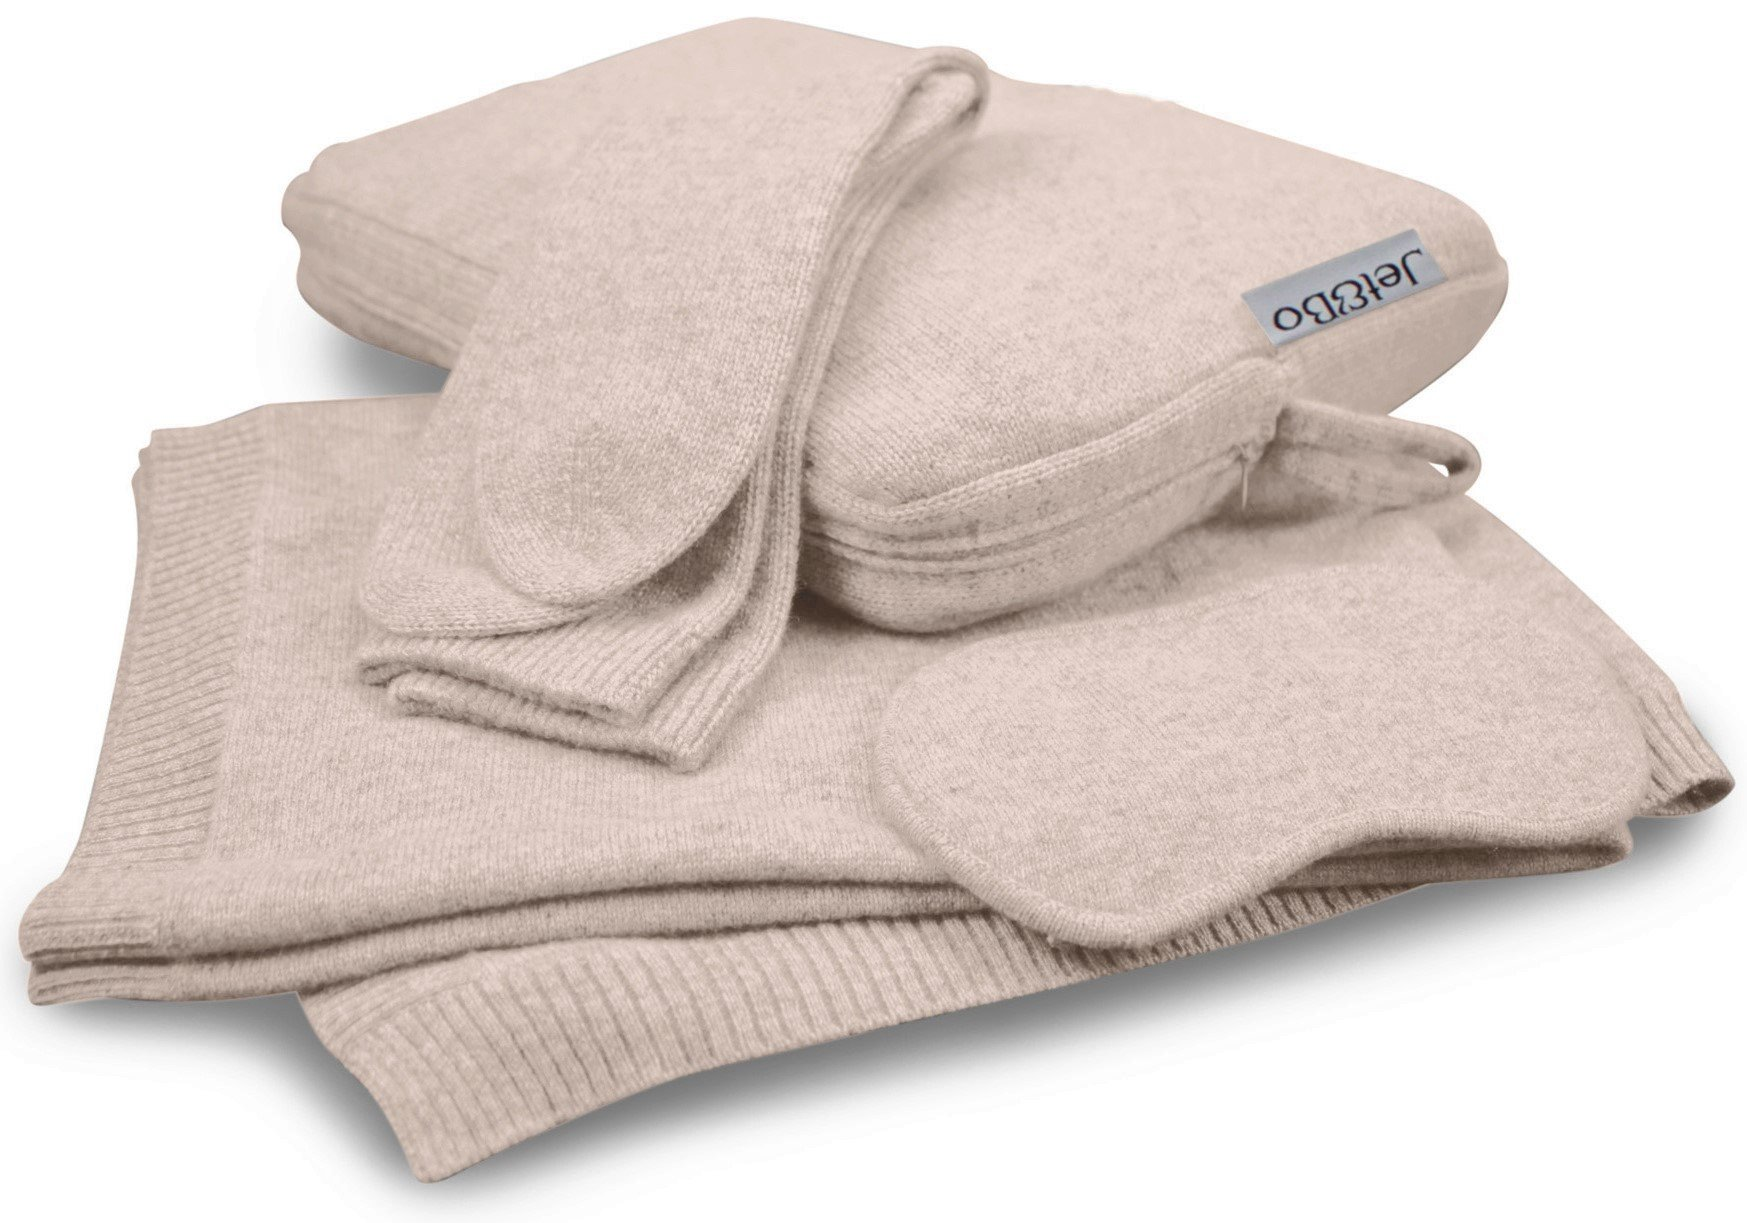 Jet&Bo 100% Cashmere Travel Set: Blanket, Eye Mask, Socks, Carry/Pillow Case Natural